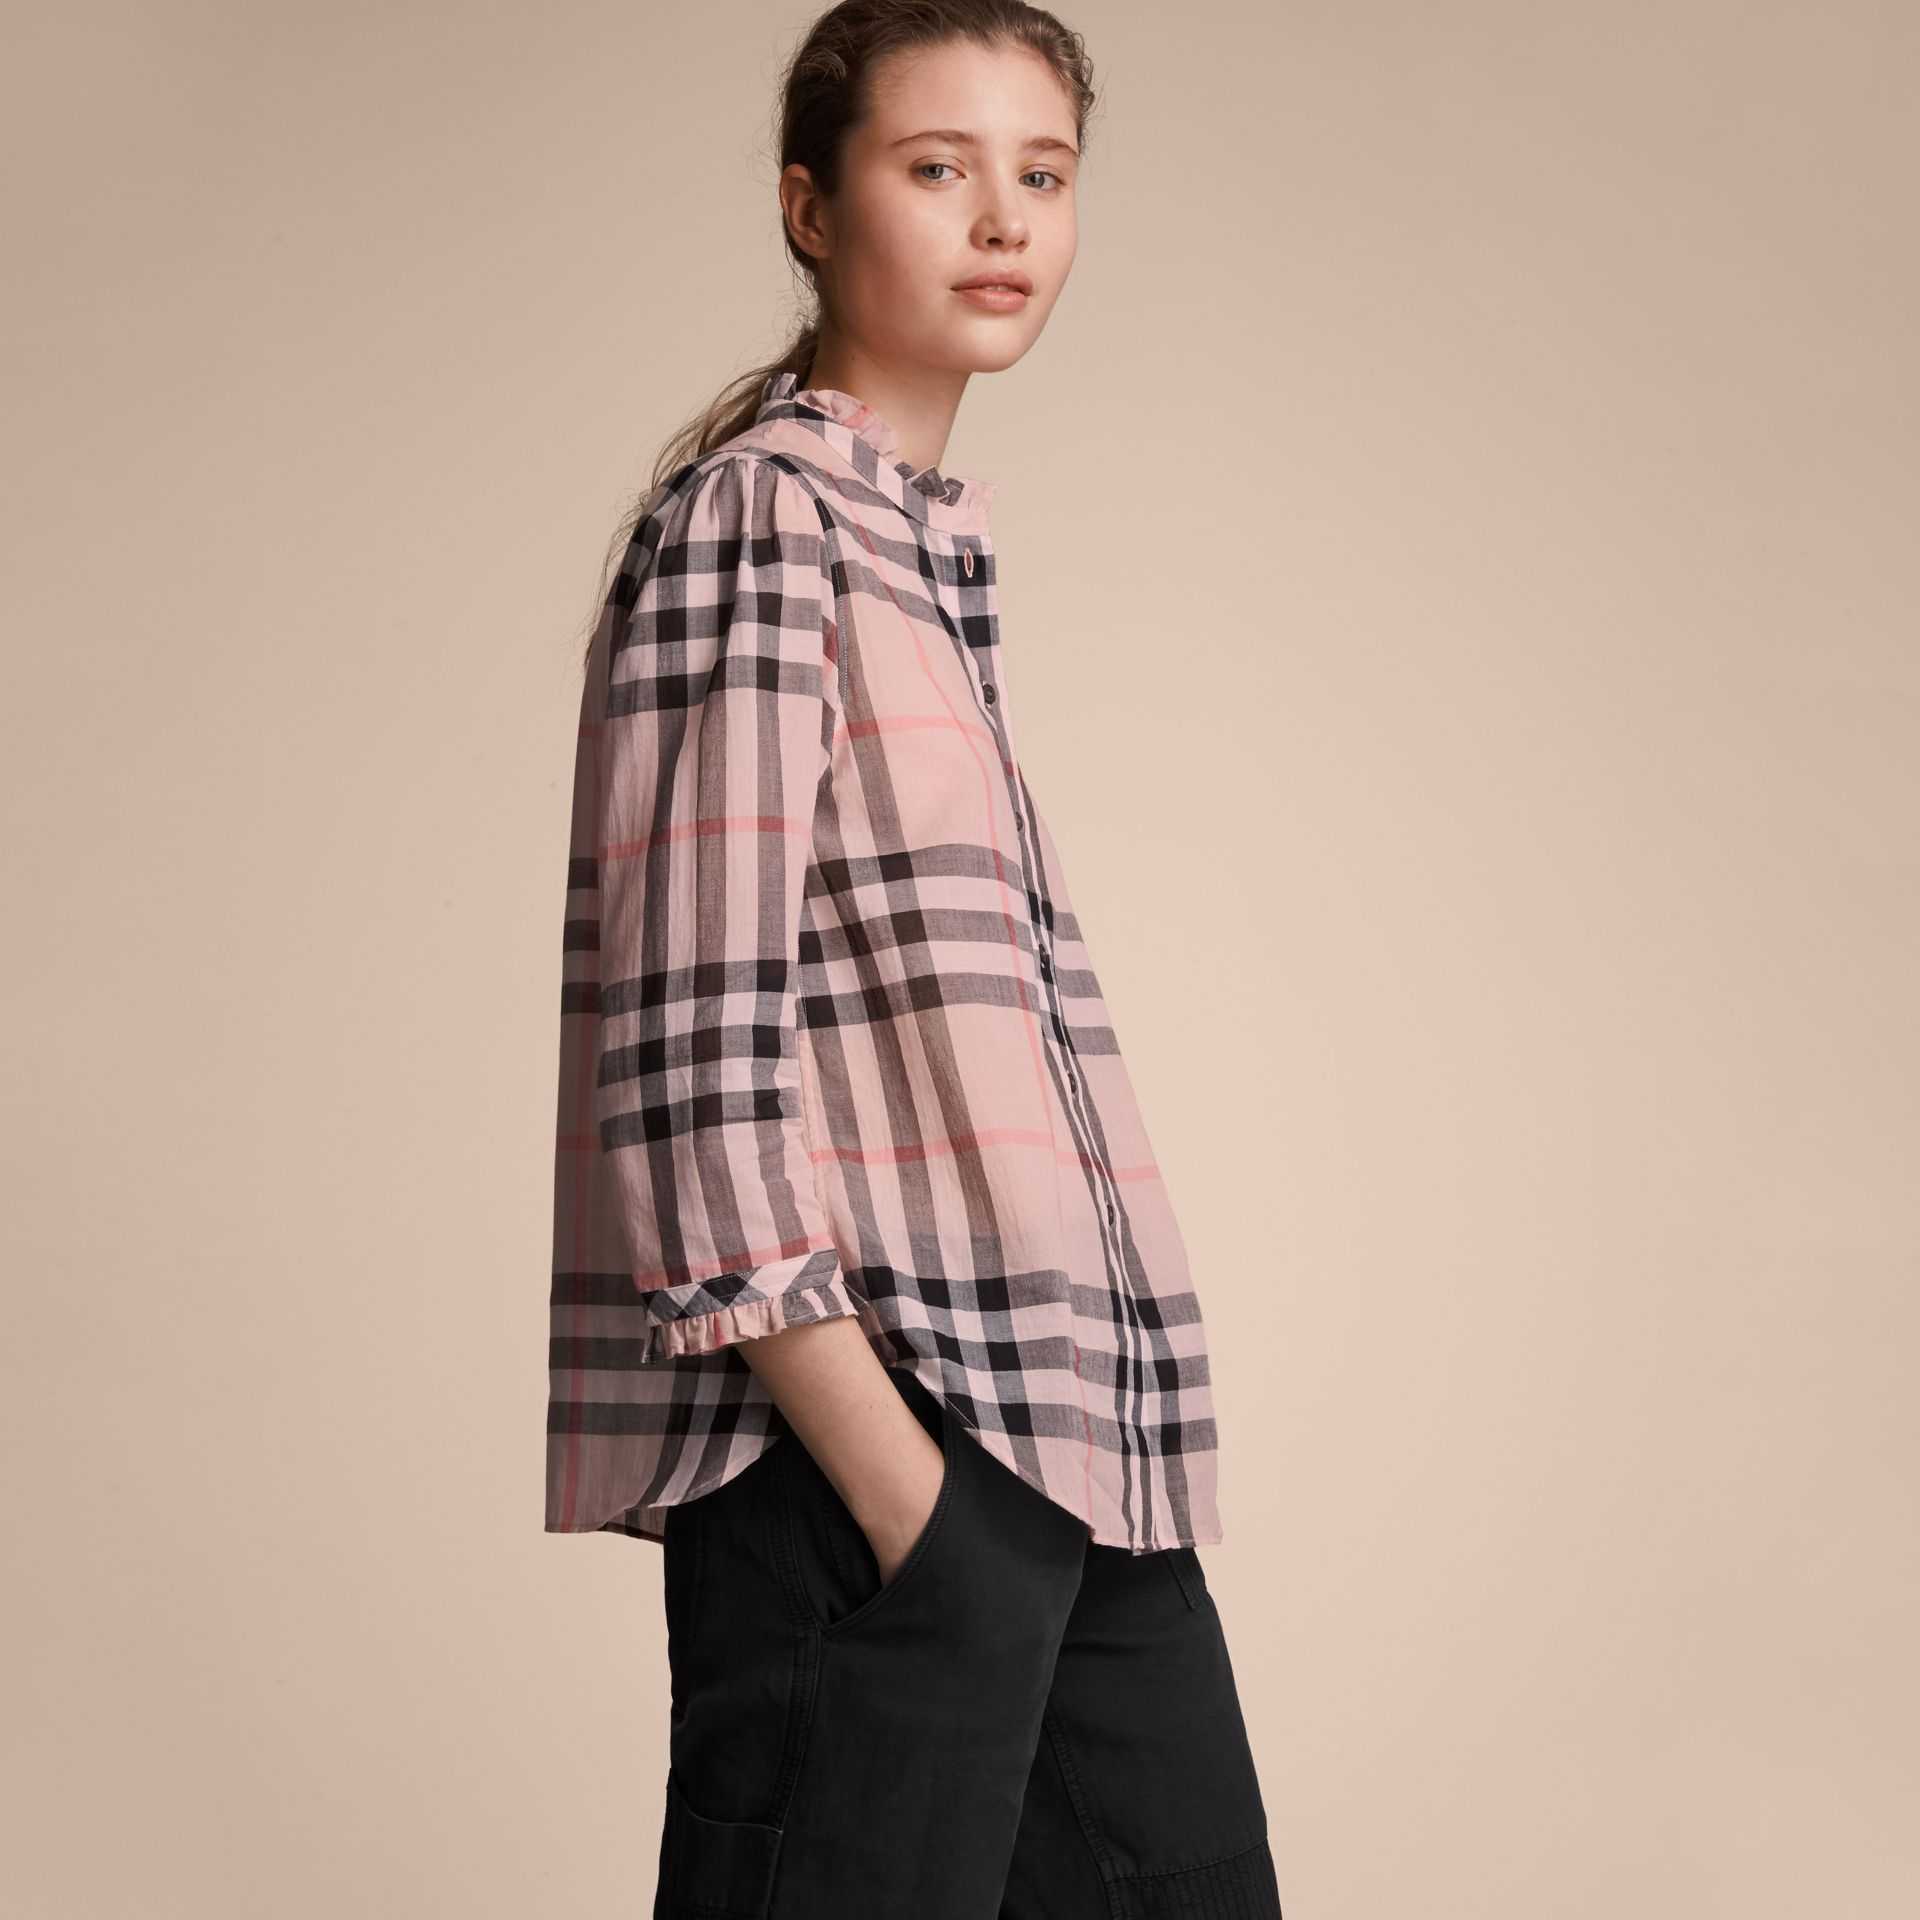 Ruffle Detail Check Cotton Shirt in Vintage Pink - Women | Burberry - gallery image 6